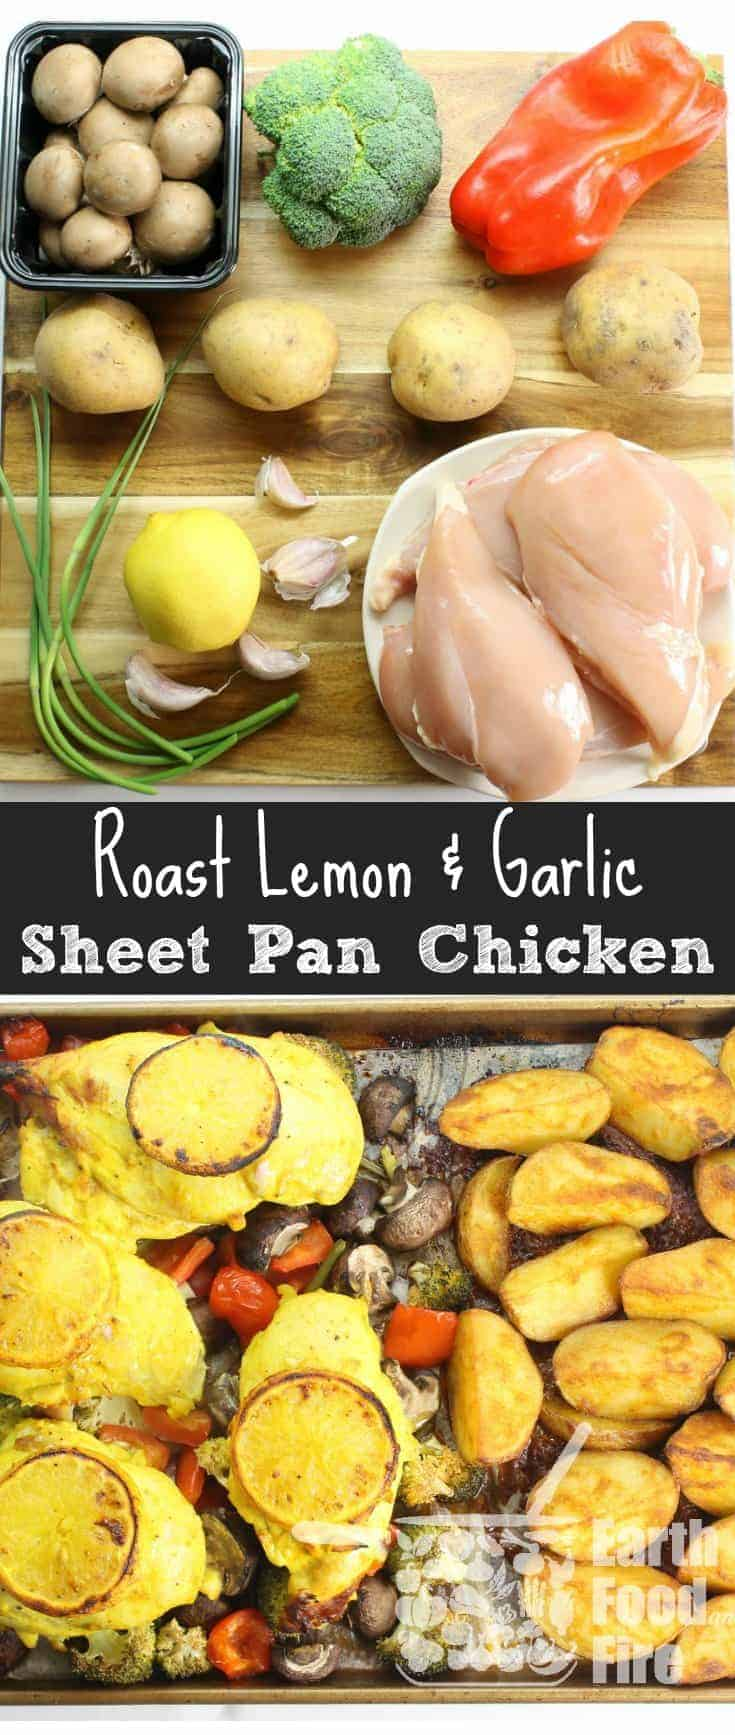 Healthy sheet pan suppers are ideal for busy families looking to do less cooking and cleaning, while enjoying a full fledged meal. This garlic & lemon roasted chicken with sides, will feed a hungry family, without having to stand in front of the stove or do a lot of clean up. #sheetpan #supper #mealprep #chicken